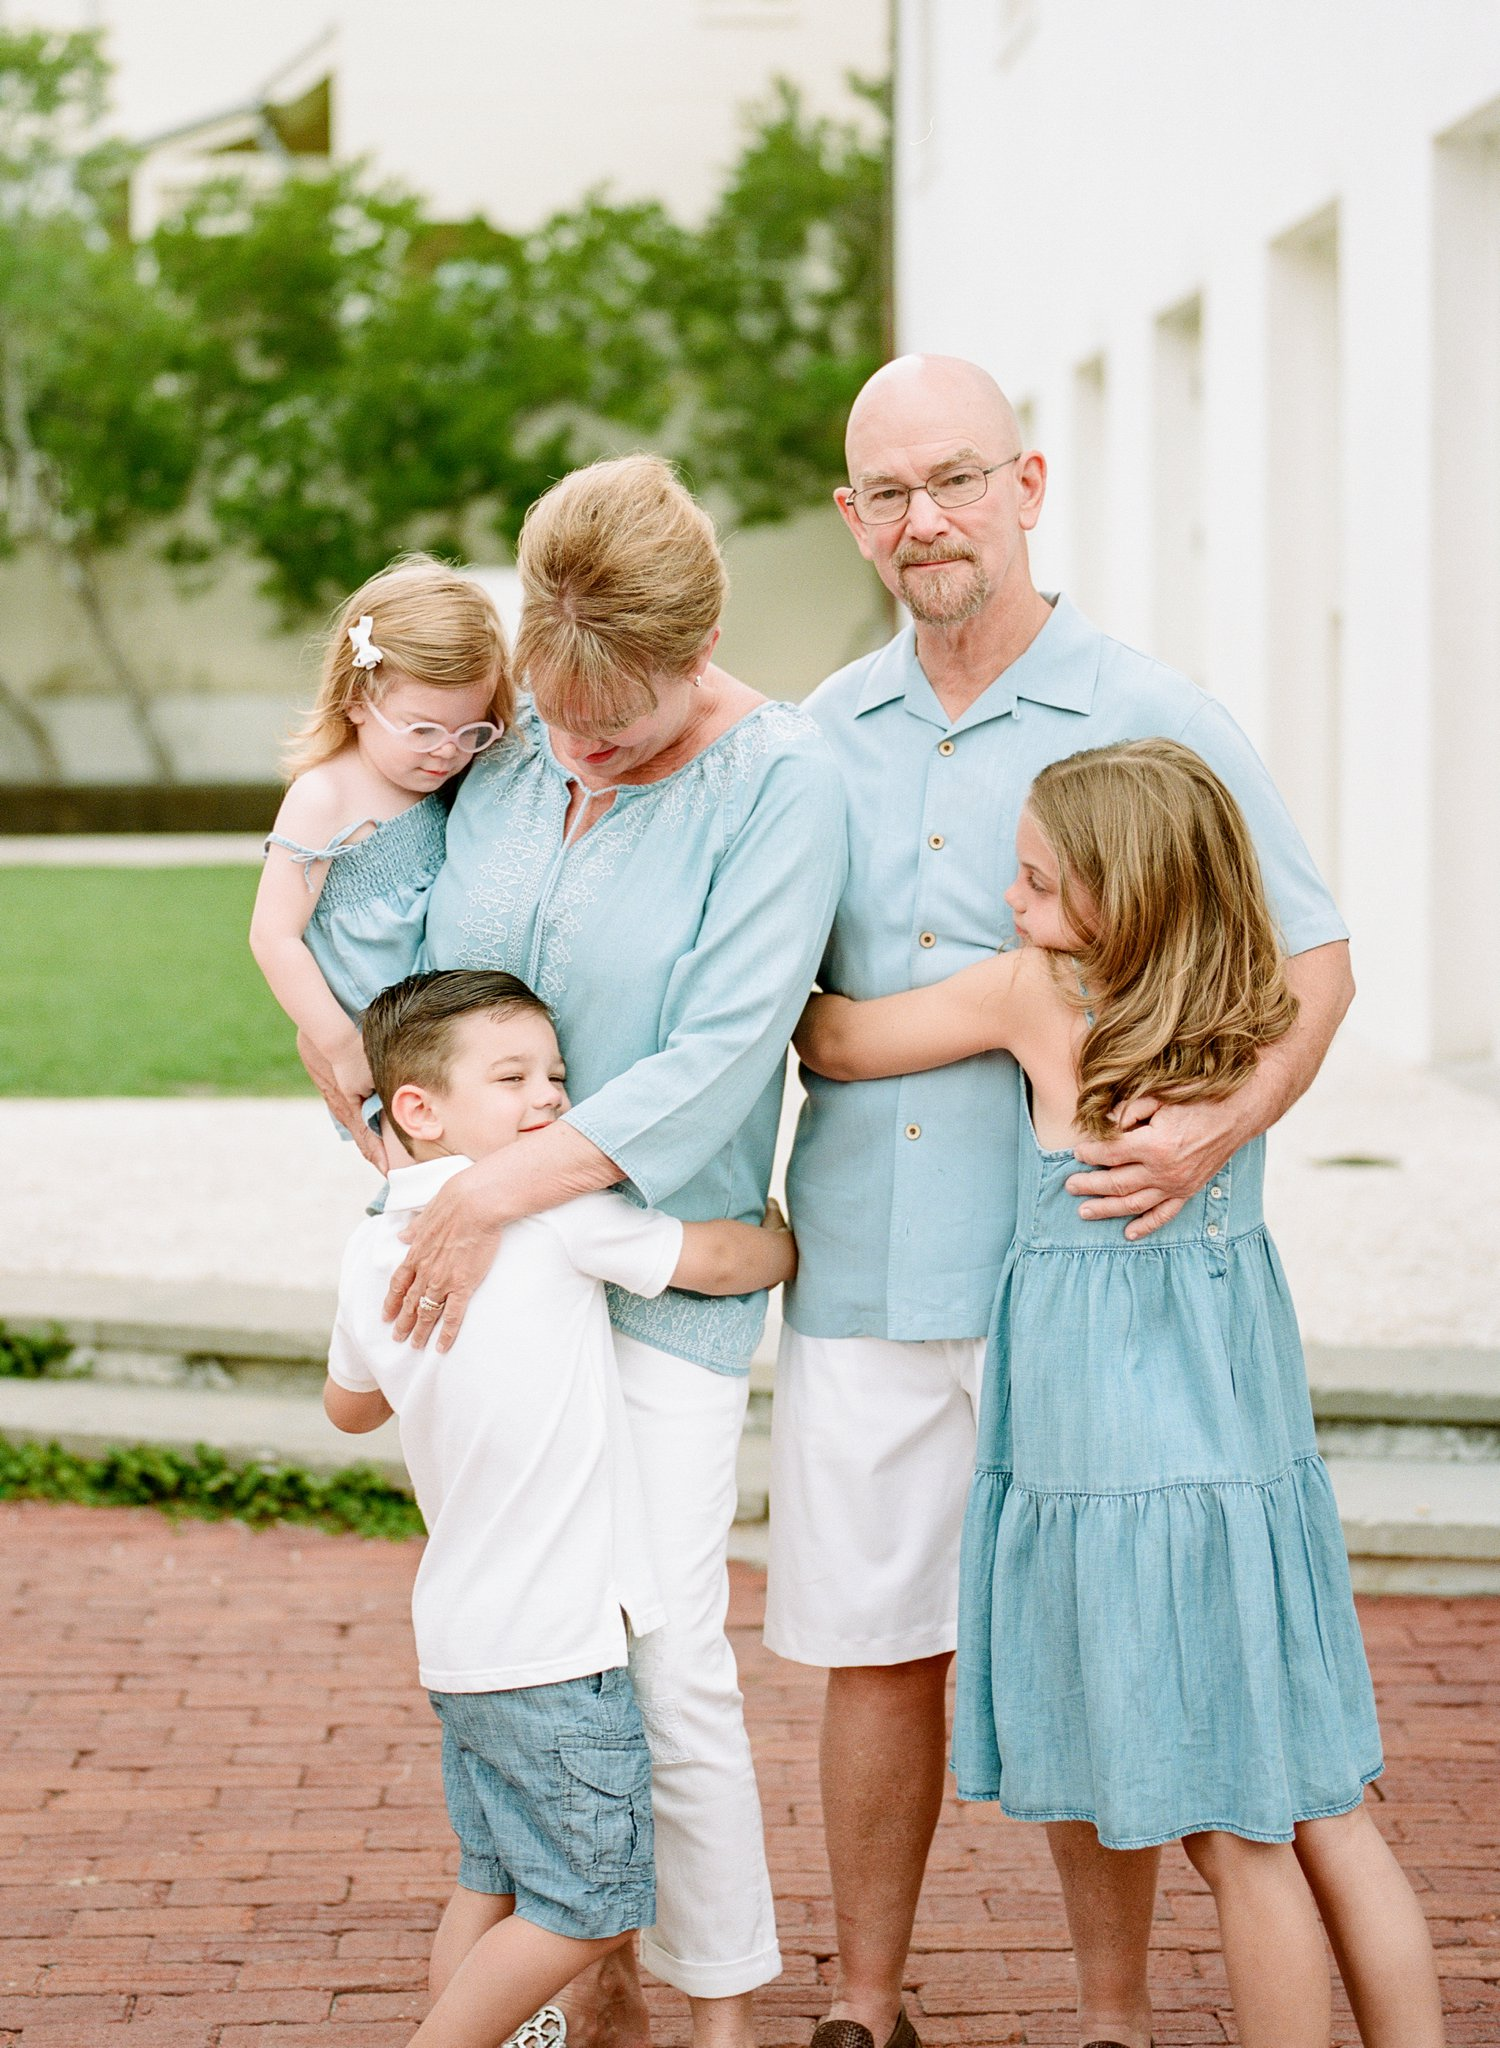 alys beach family photographer destin florida beach photographer shannon griffin photography_0018.jpg